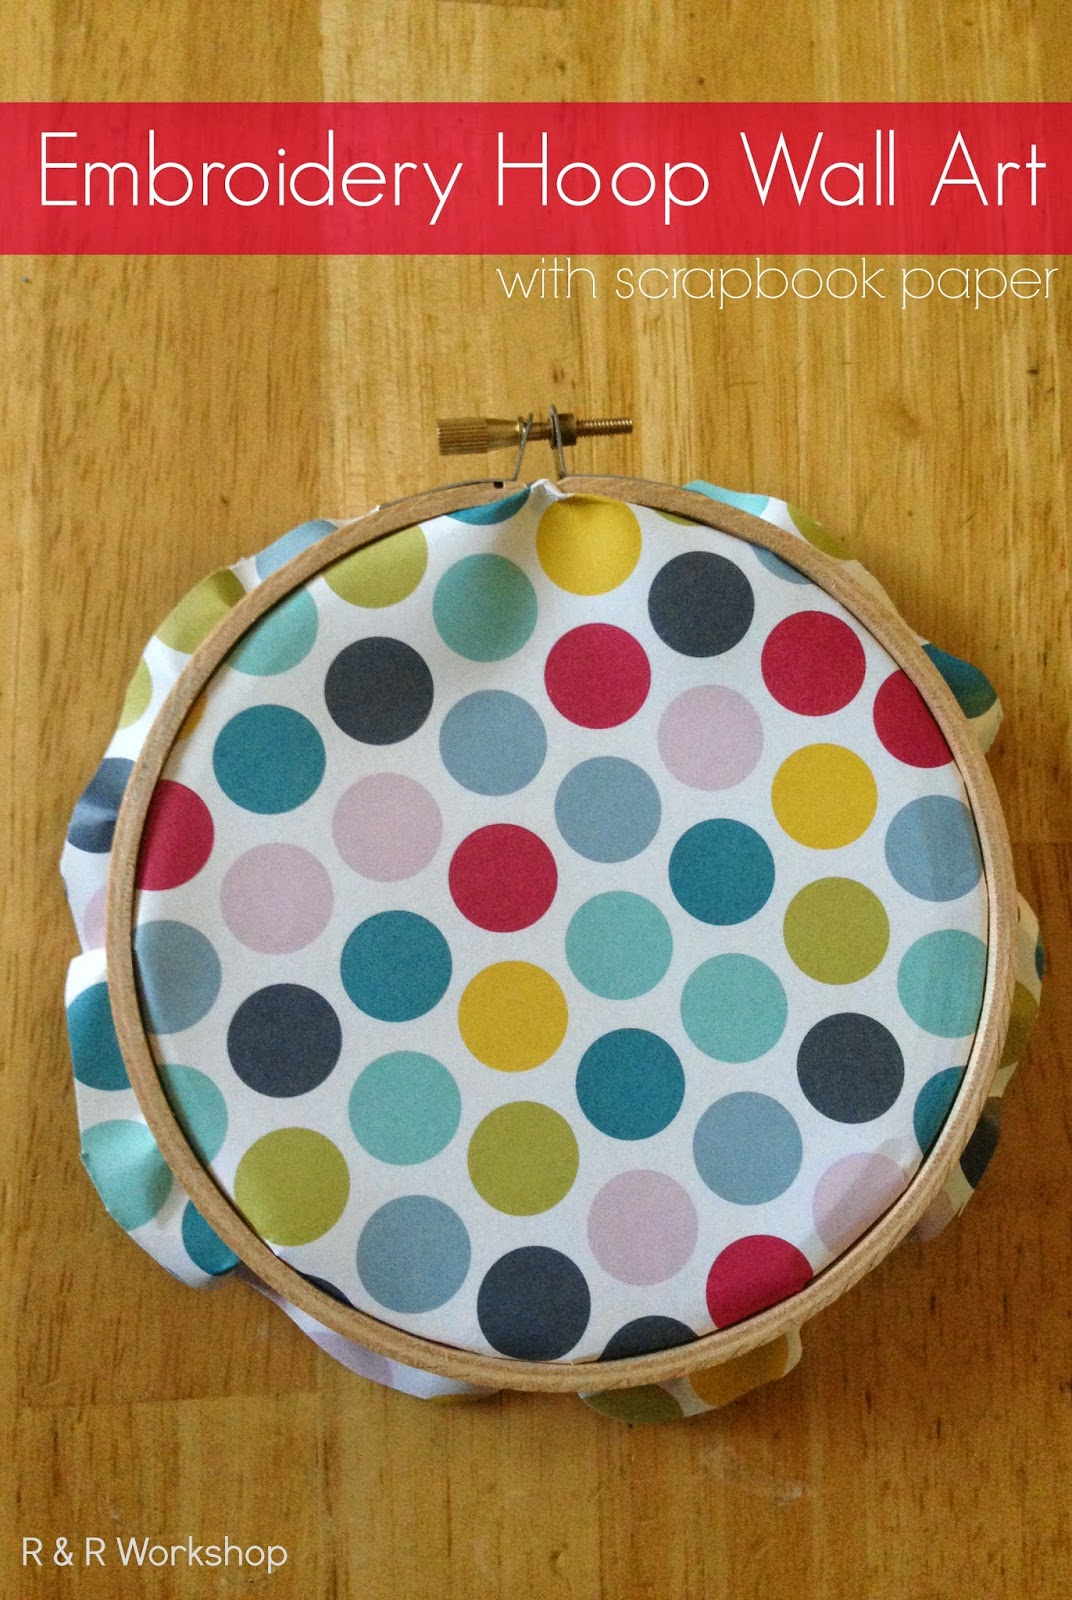 Scrapbook paper wall art - Today I Will Be Sharing How I Made Embroidery Hoop Art With Scrapbook Paper A Simple Craft To Add Personality To Any Wall In Your Home